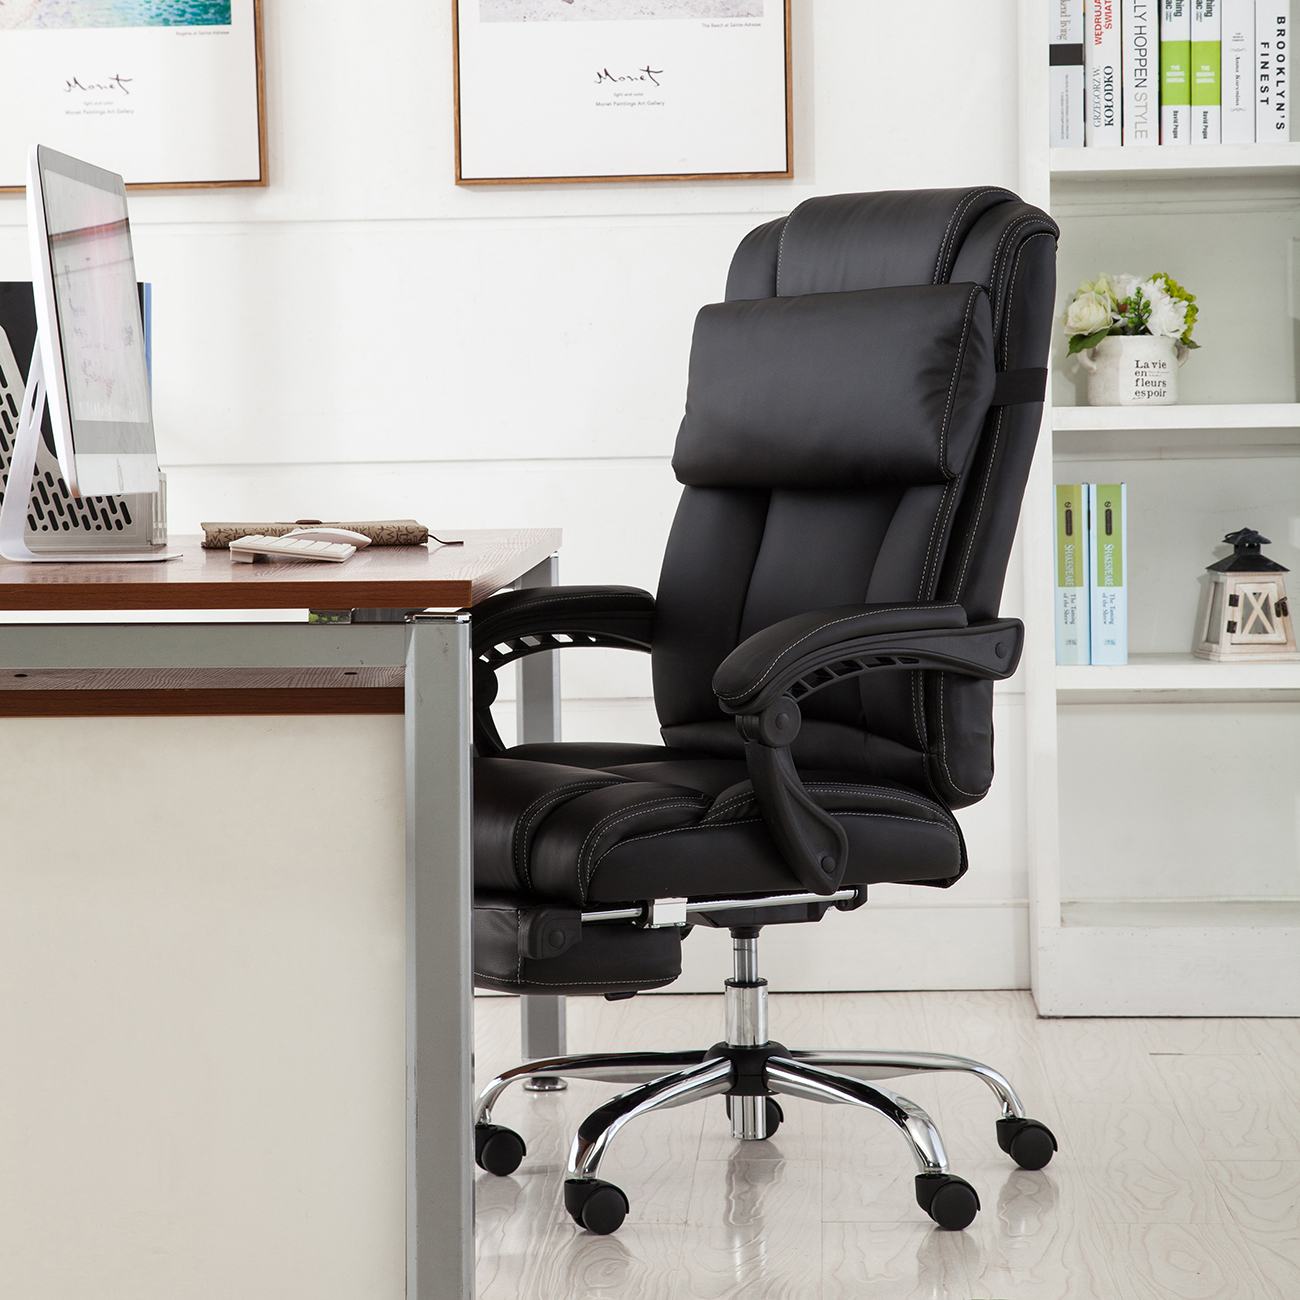 reclining office chair with footrest india white covers bed bath and beyond executive ergonomic high back